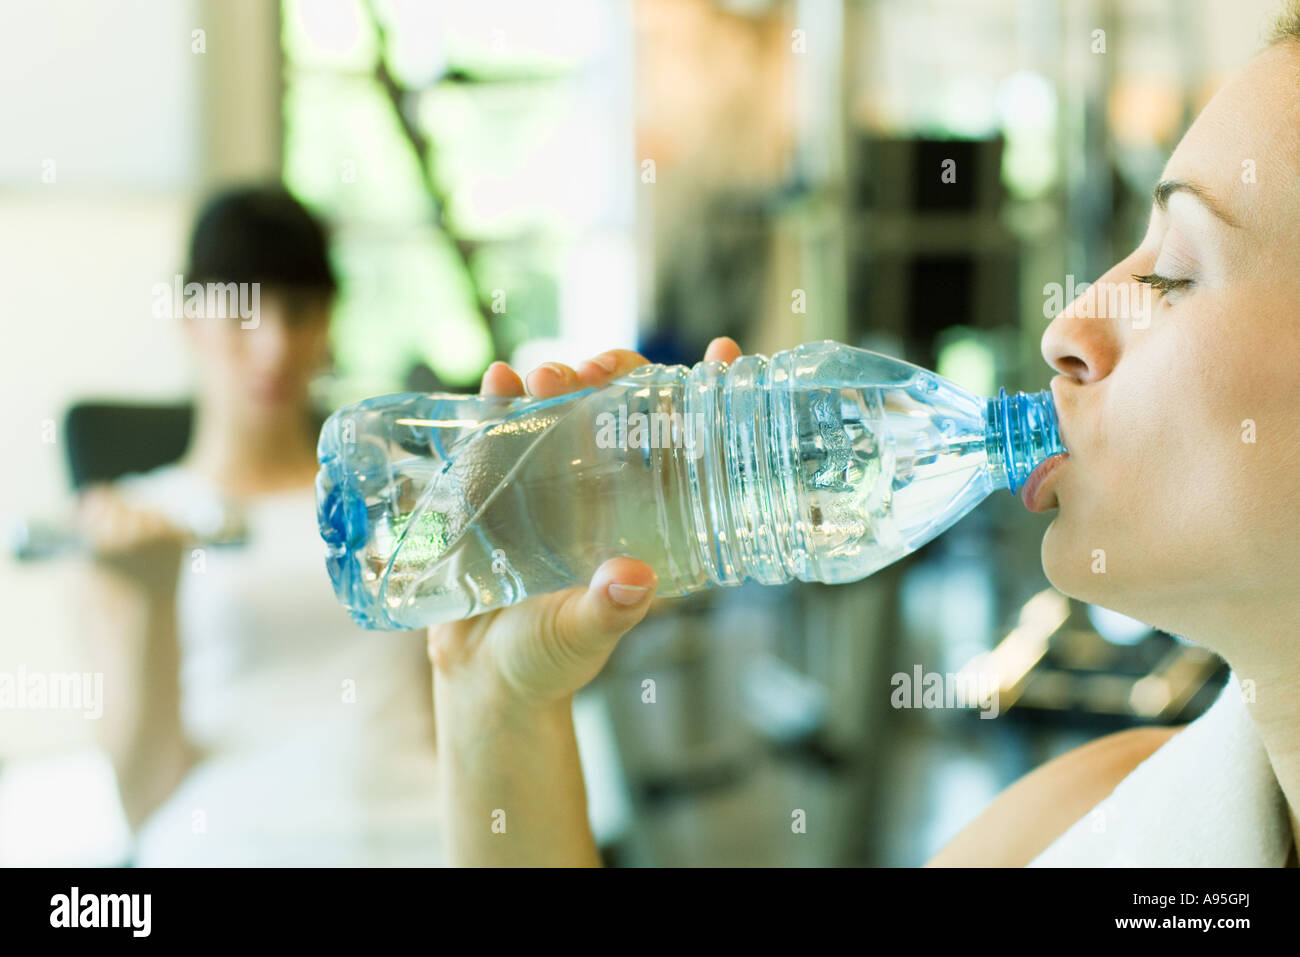 Two women in weight room, focus on woman in foreground drinking bottle of water - Stock Image